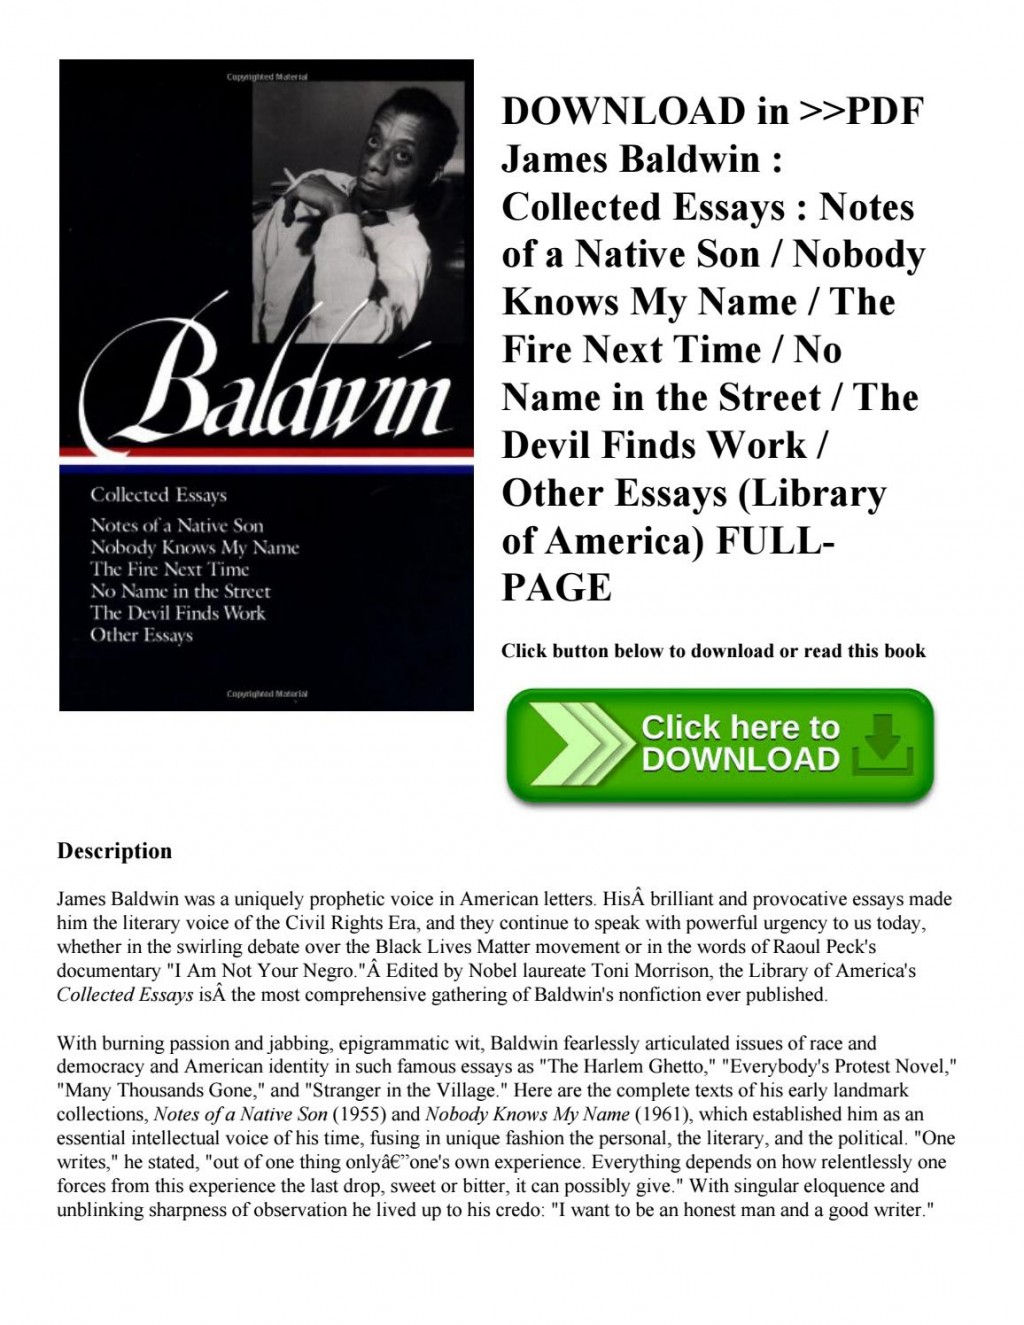 001 James Baldwin Essays Pdf Page 1 Essay Imposing Large